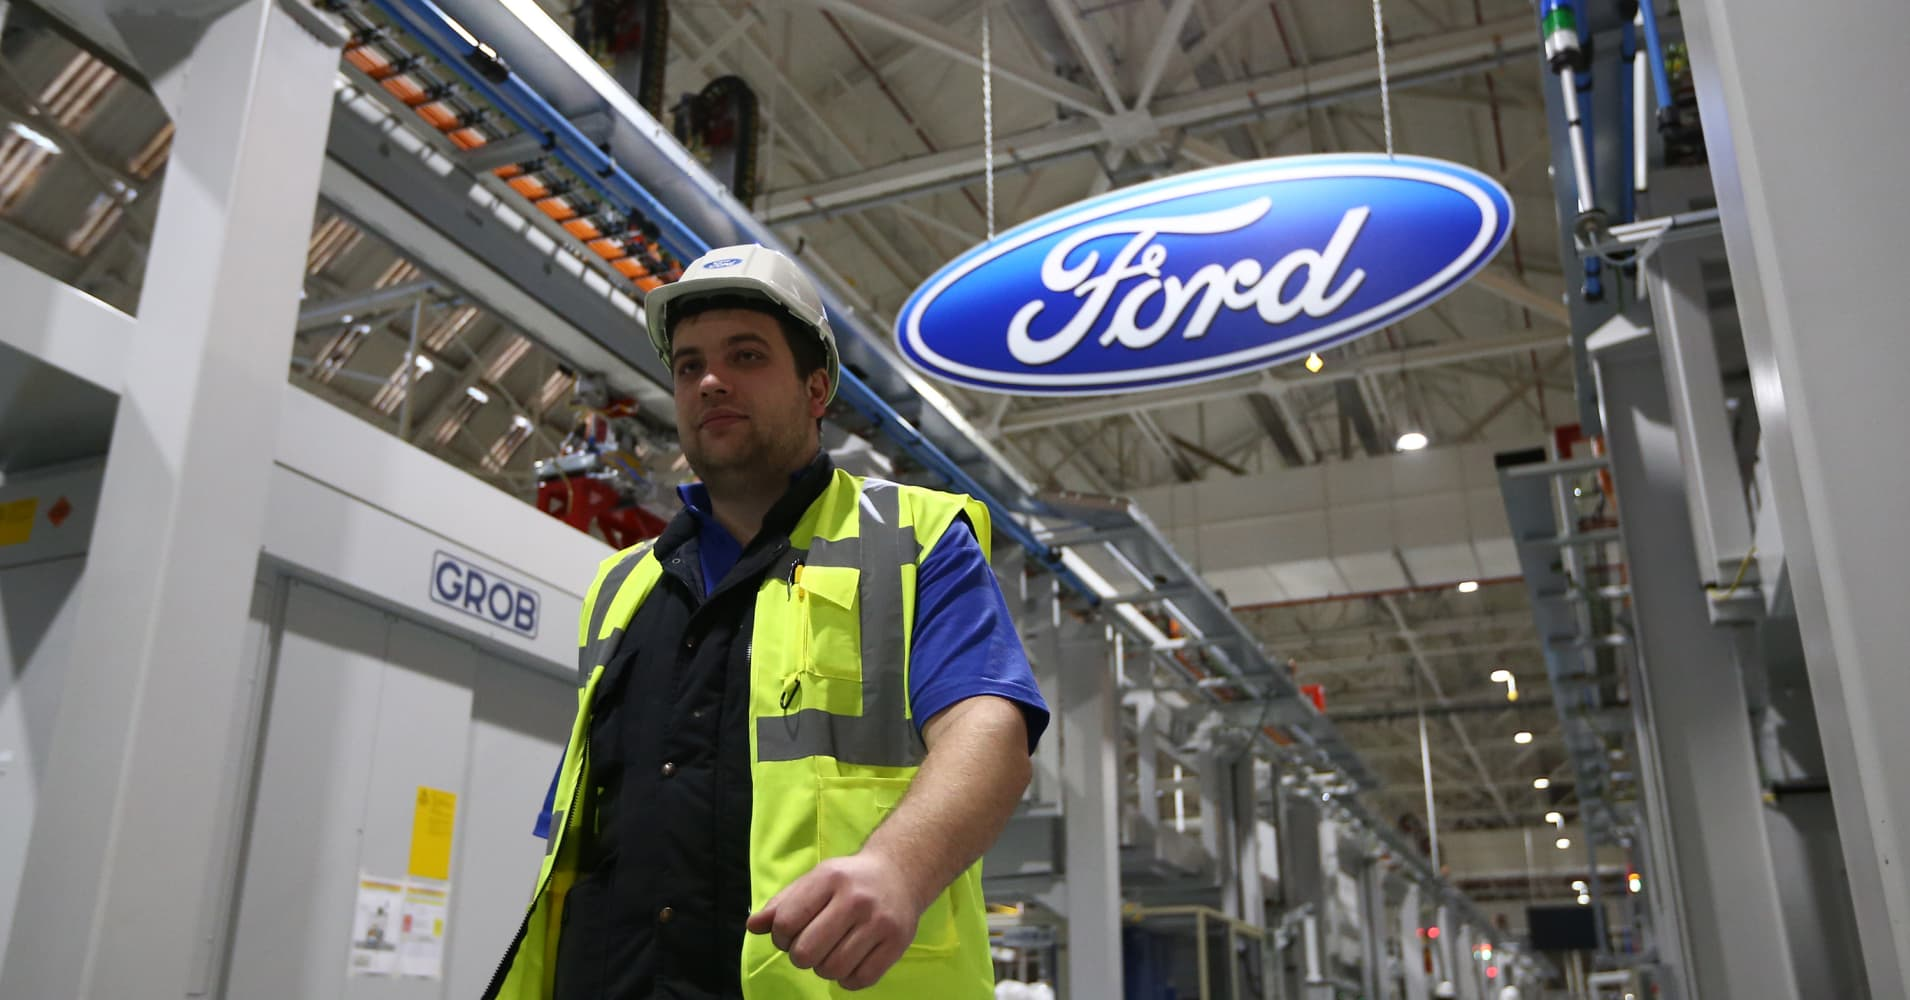 Ford motor posts earnings of 23 cents a share vs 26 cents for Ford motor company financial analysis 2015